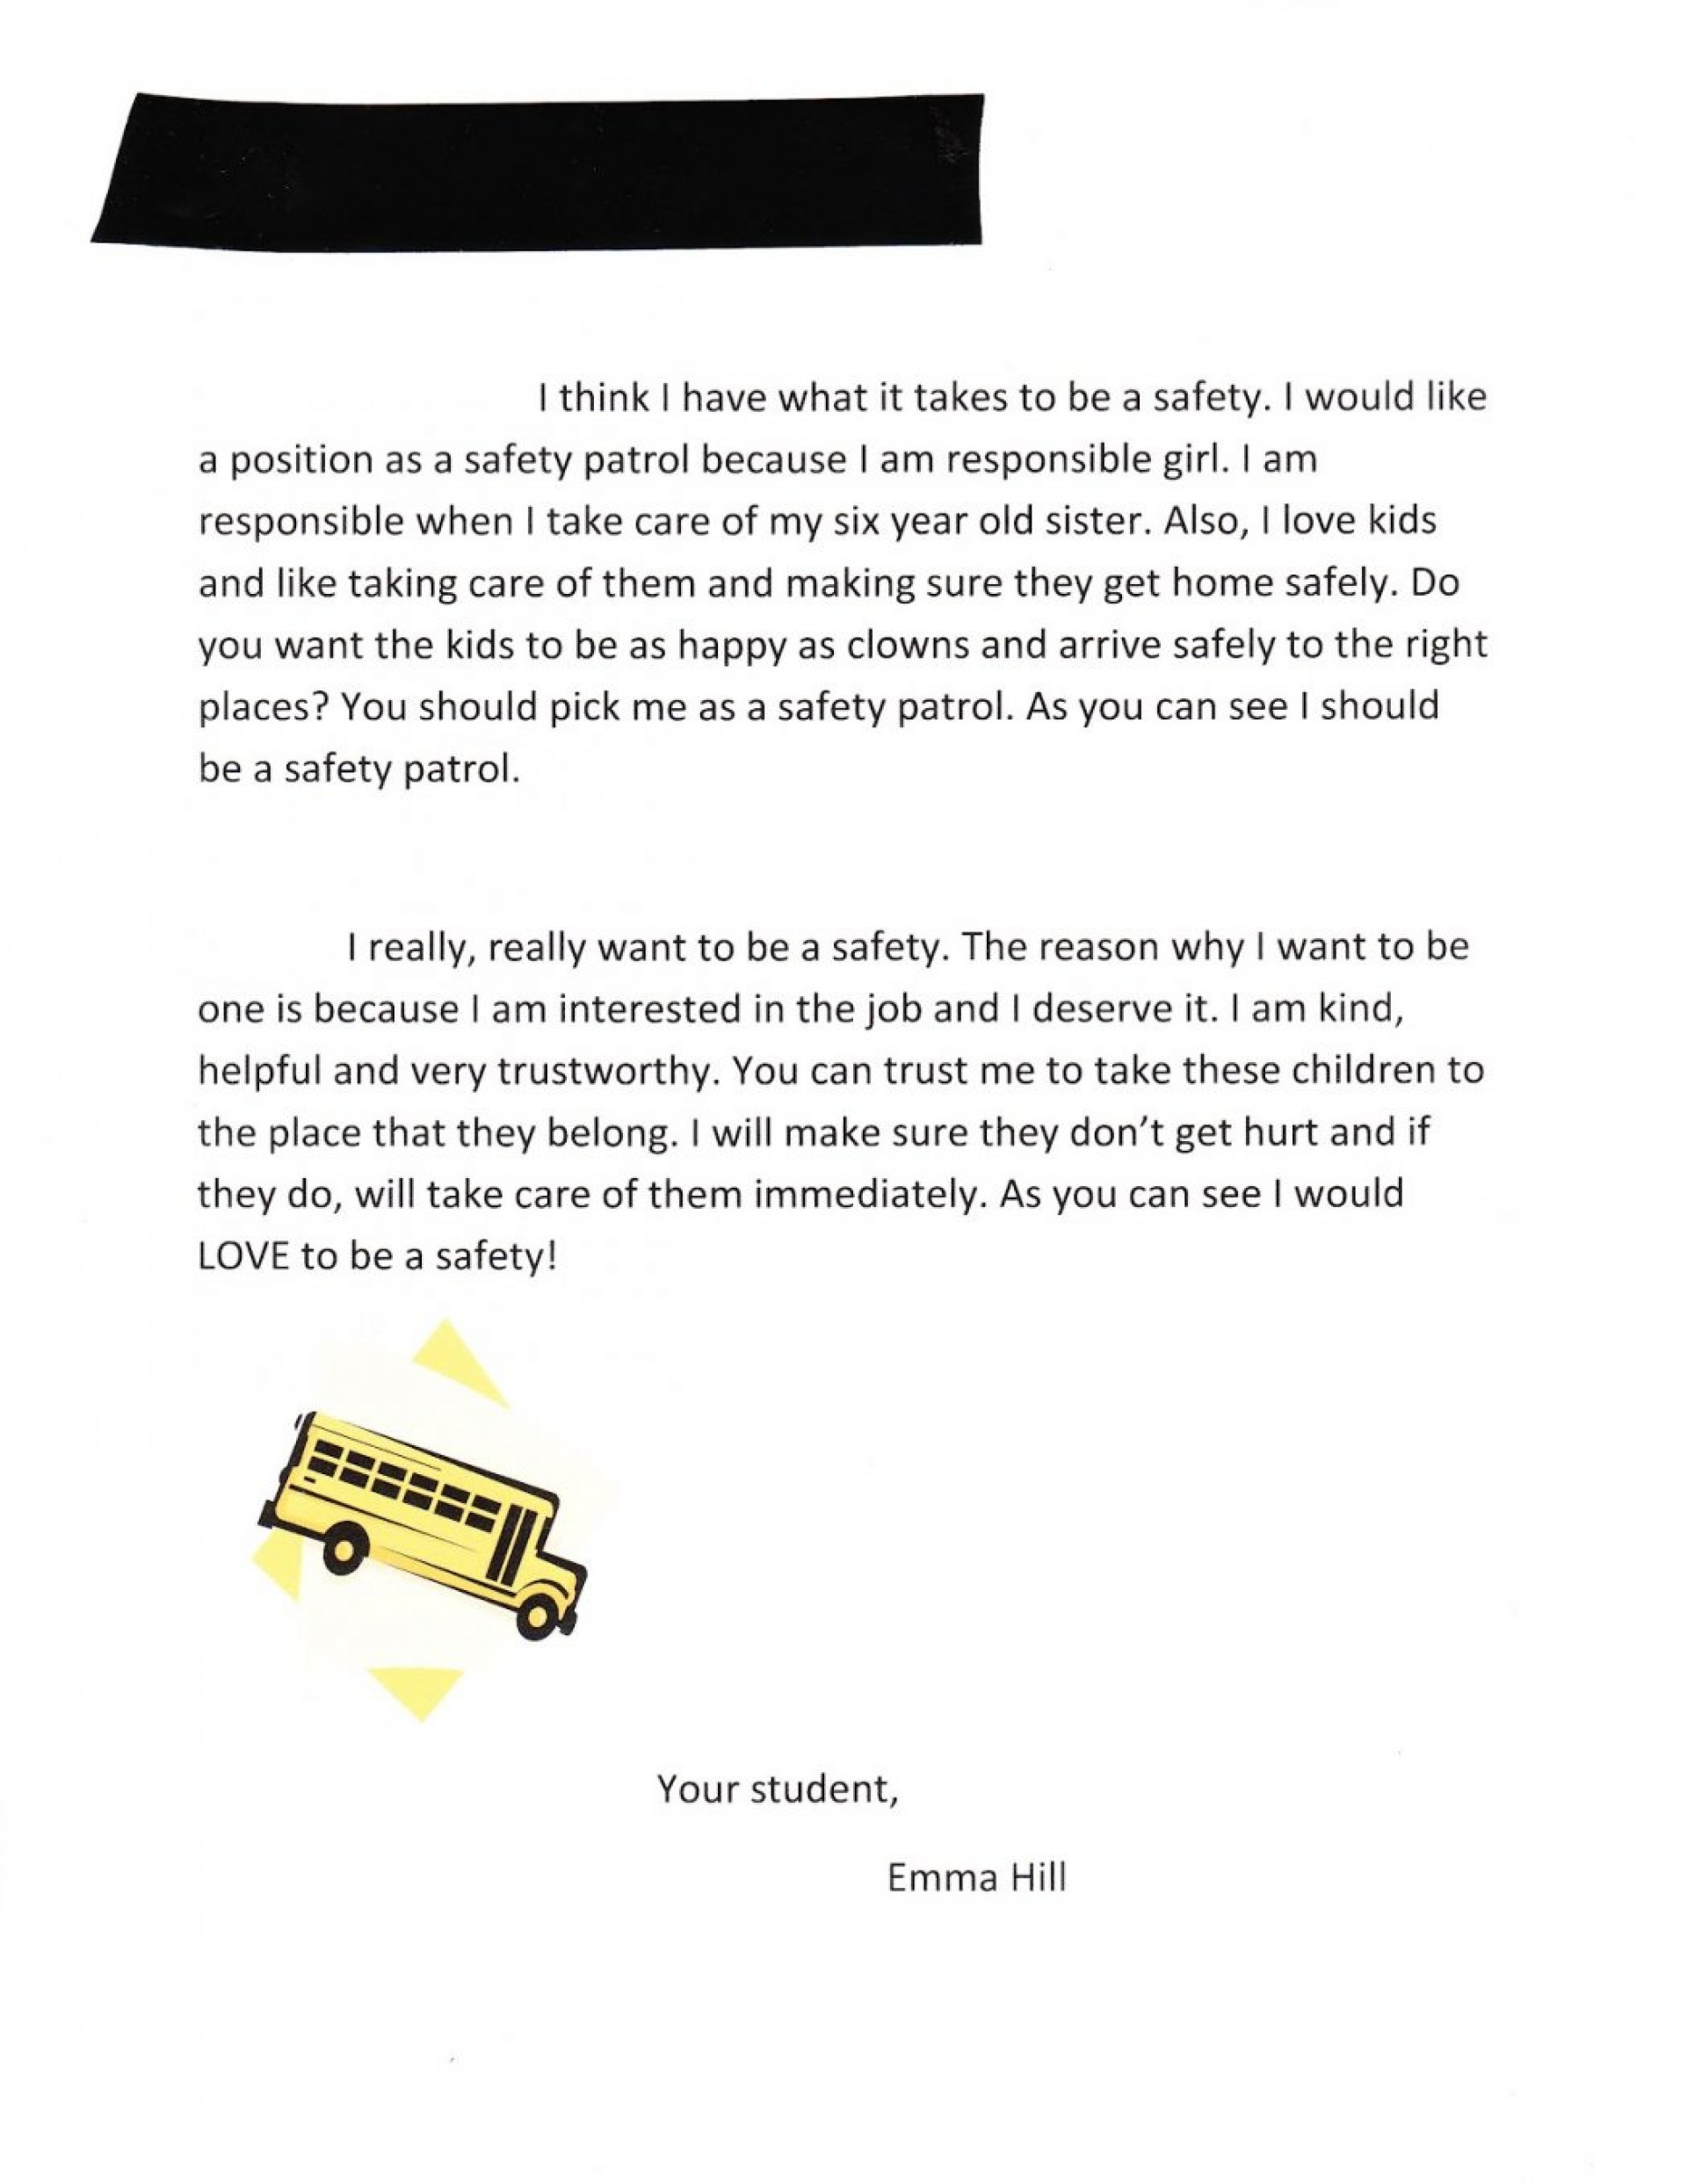 002 Essay Example Should Minimum Wage Raised School Safety The Letter Research Paper Outline Safetypatrol 1048x1357 Unusual Why Be We Raise Not Increase 1920